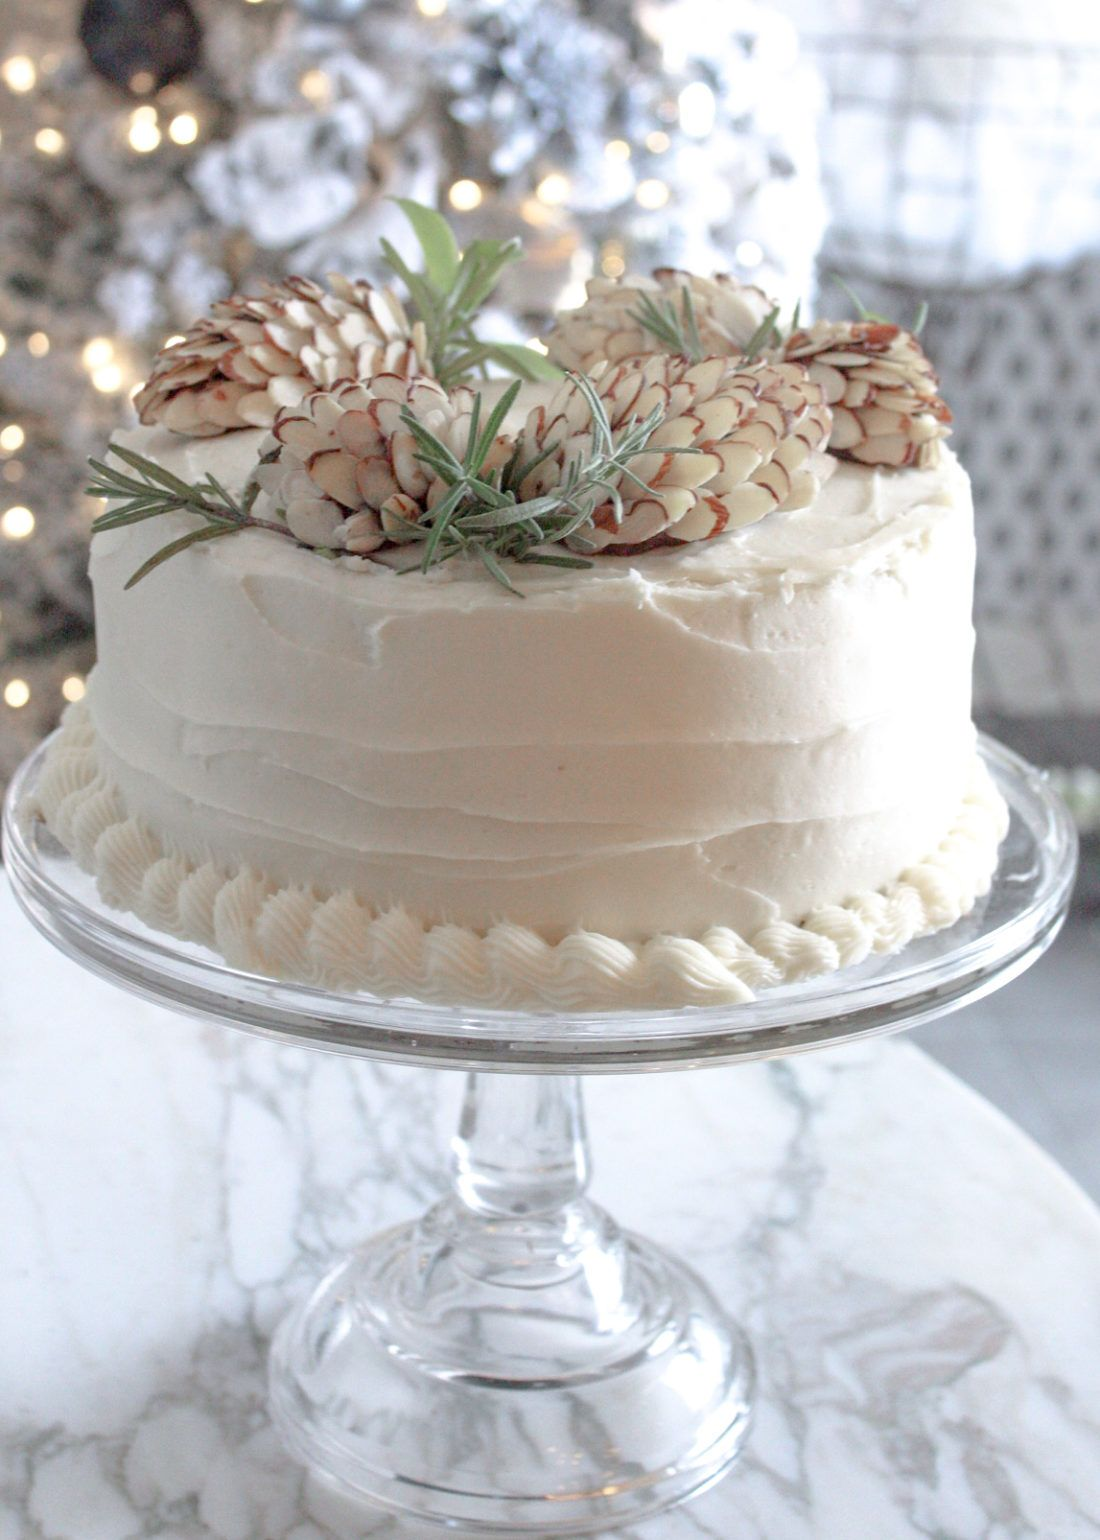 A Pine Cone Cake Creation for Winter Birthdays and ...